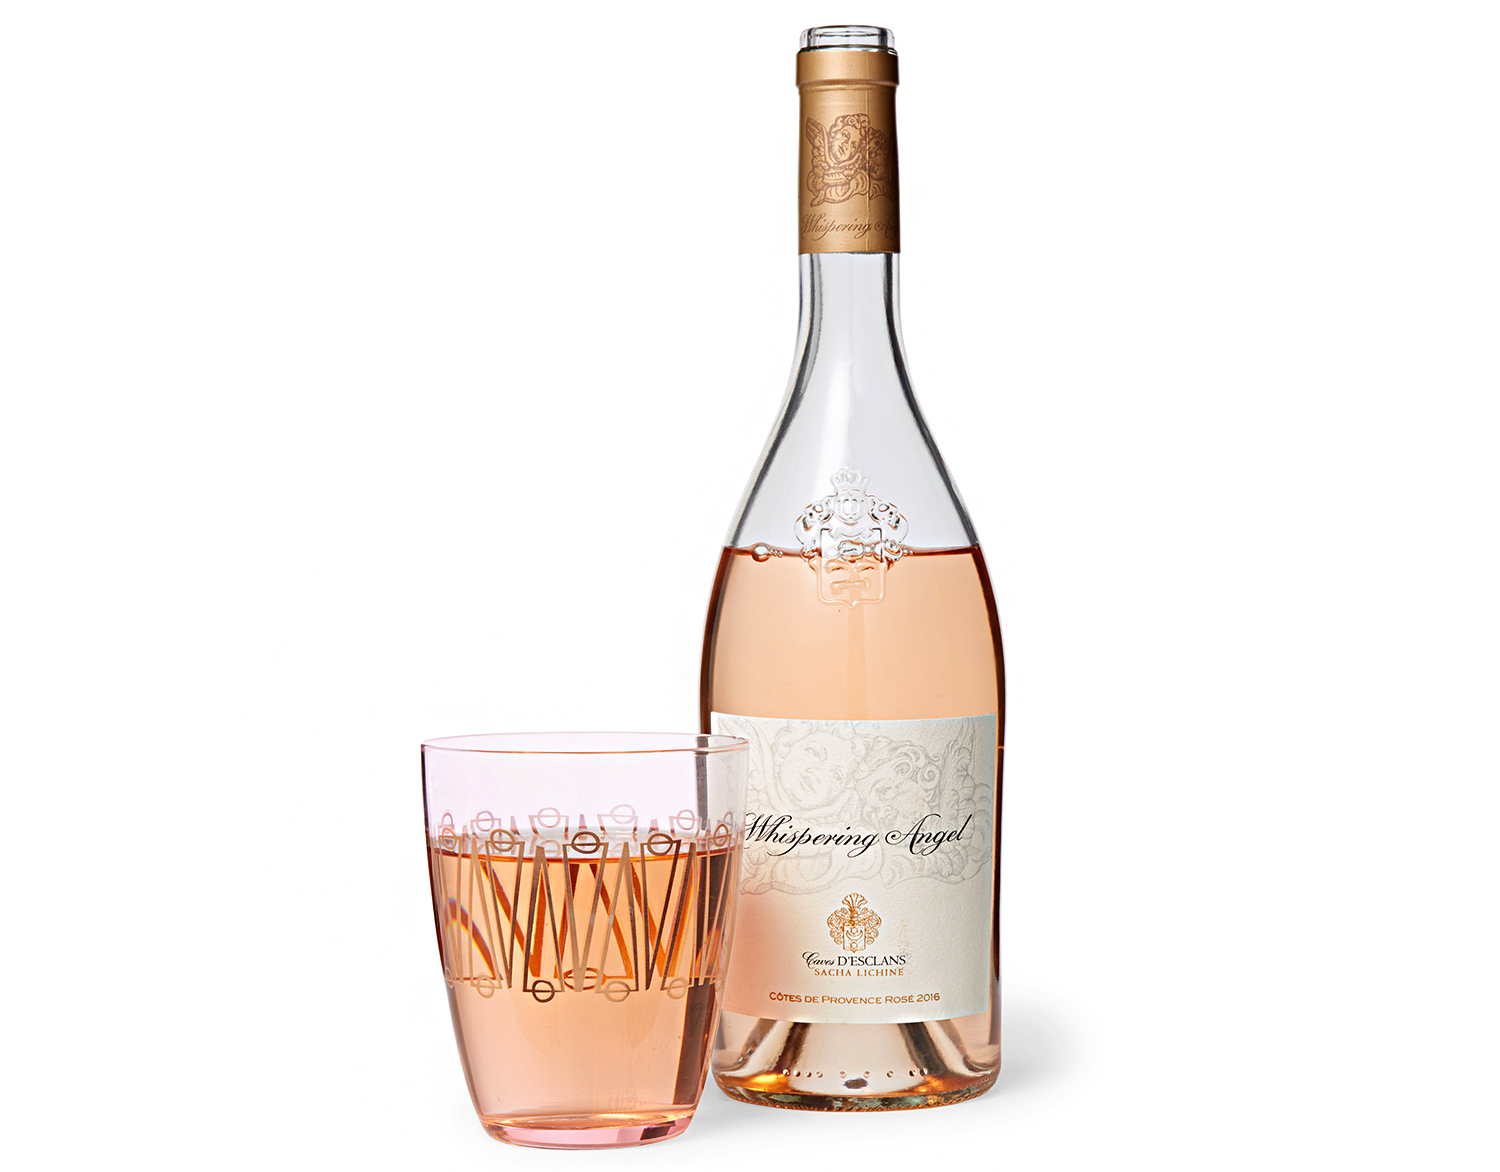 whispering angel rose and stemless wine glasses